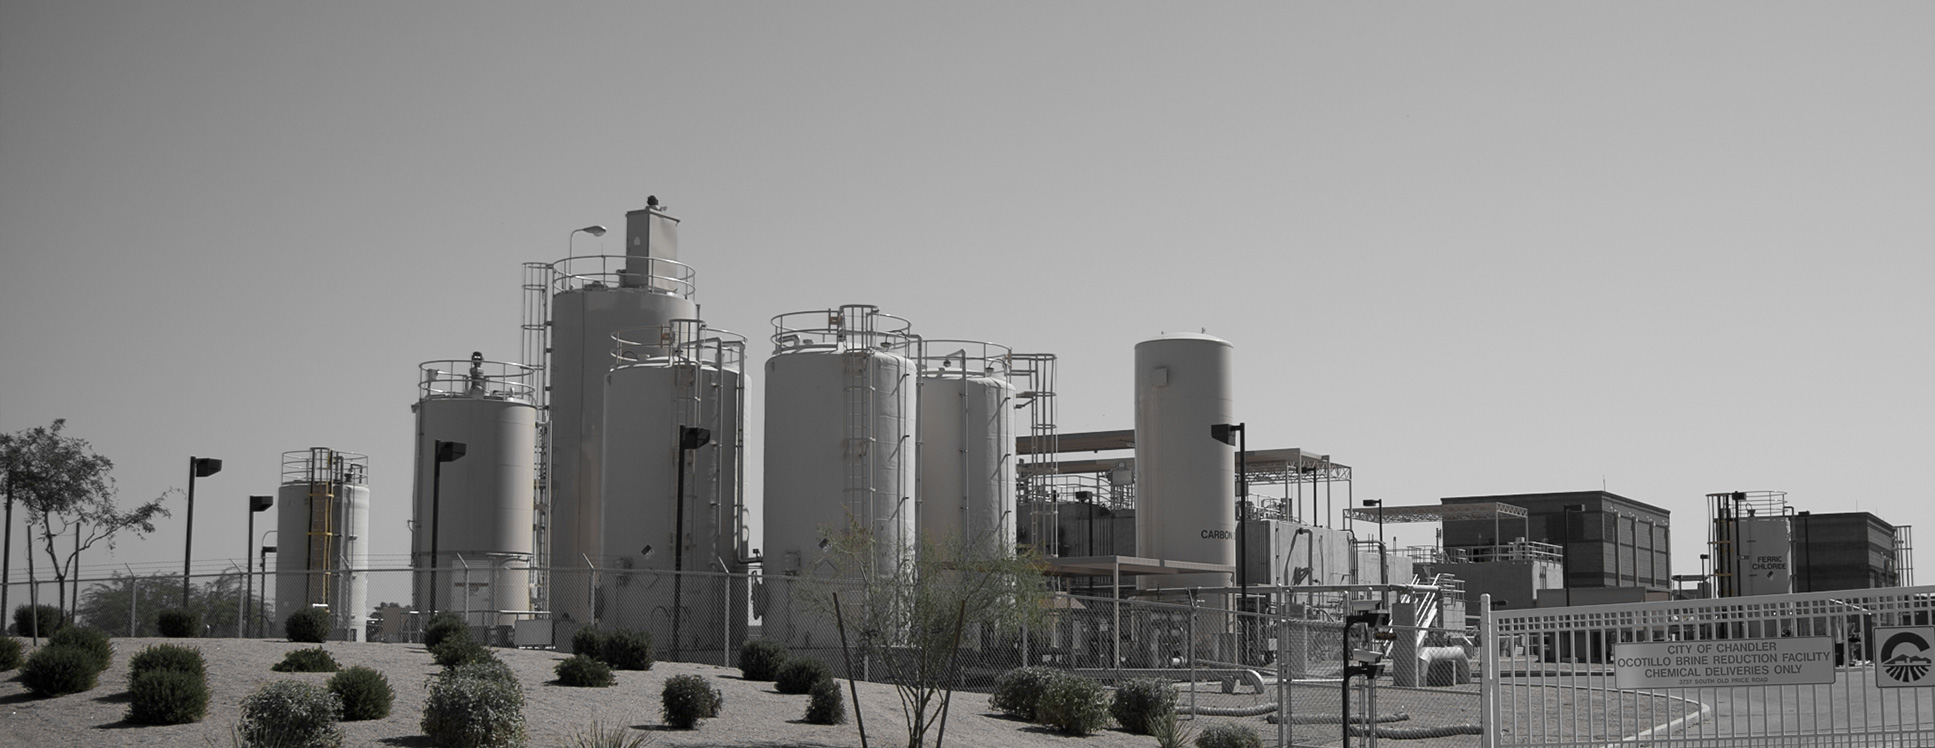 Ocotillo Brine Reduction Facility